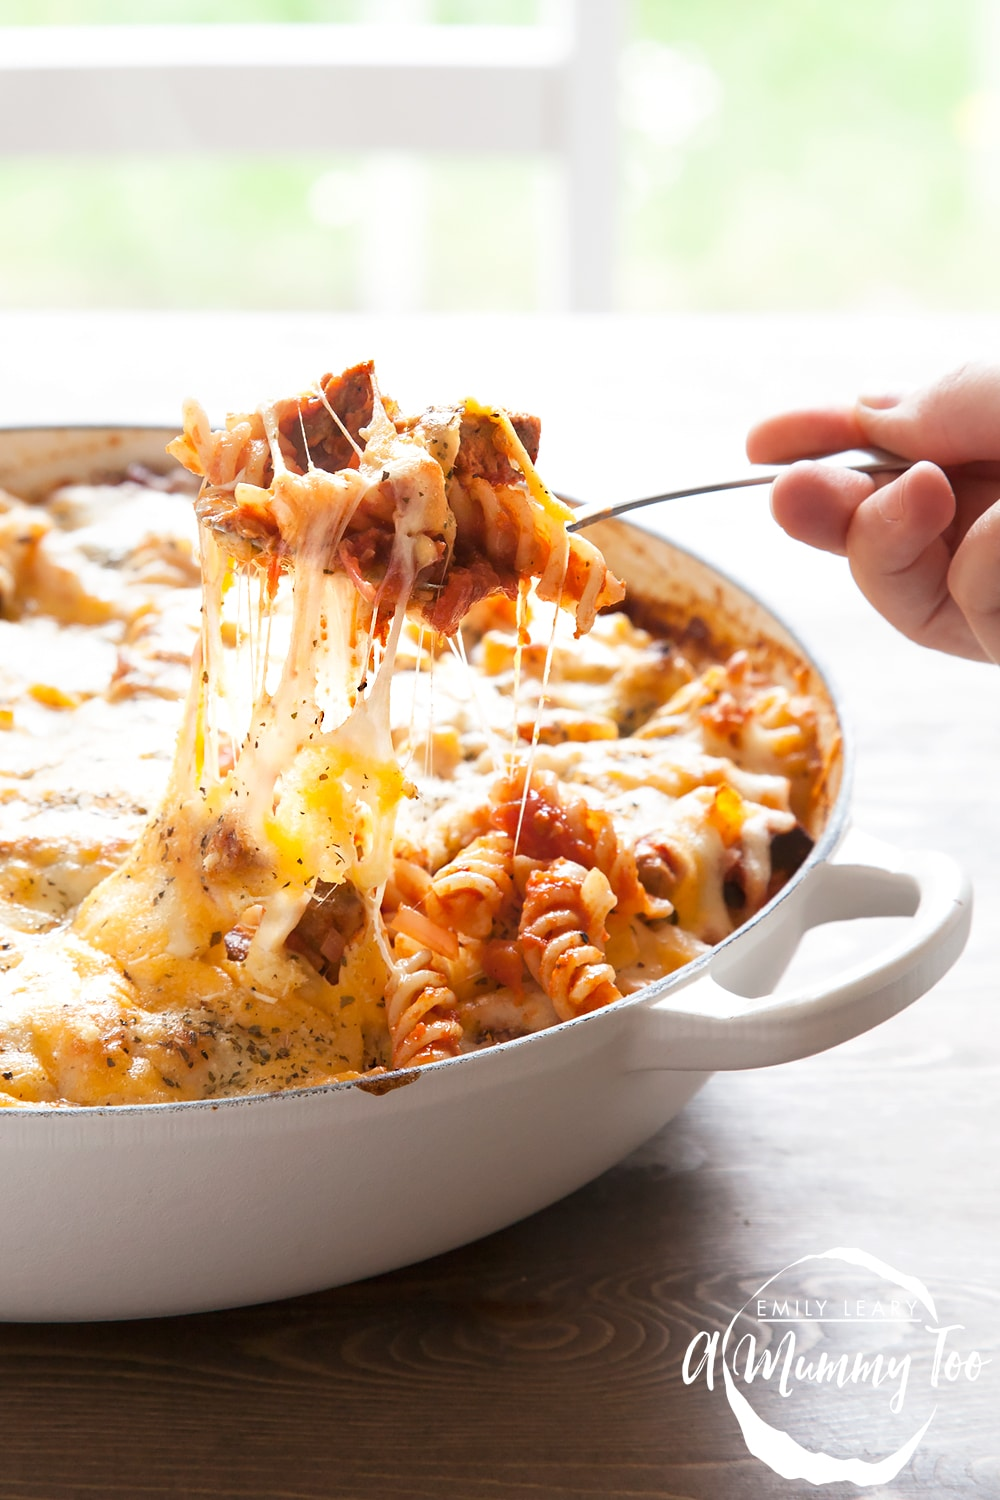 A delicious twist on the classic sausage pasta bake, this dish packs a flavourful punch with garlic, herbs and moreish Quorn Meat Free Steak Strips.